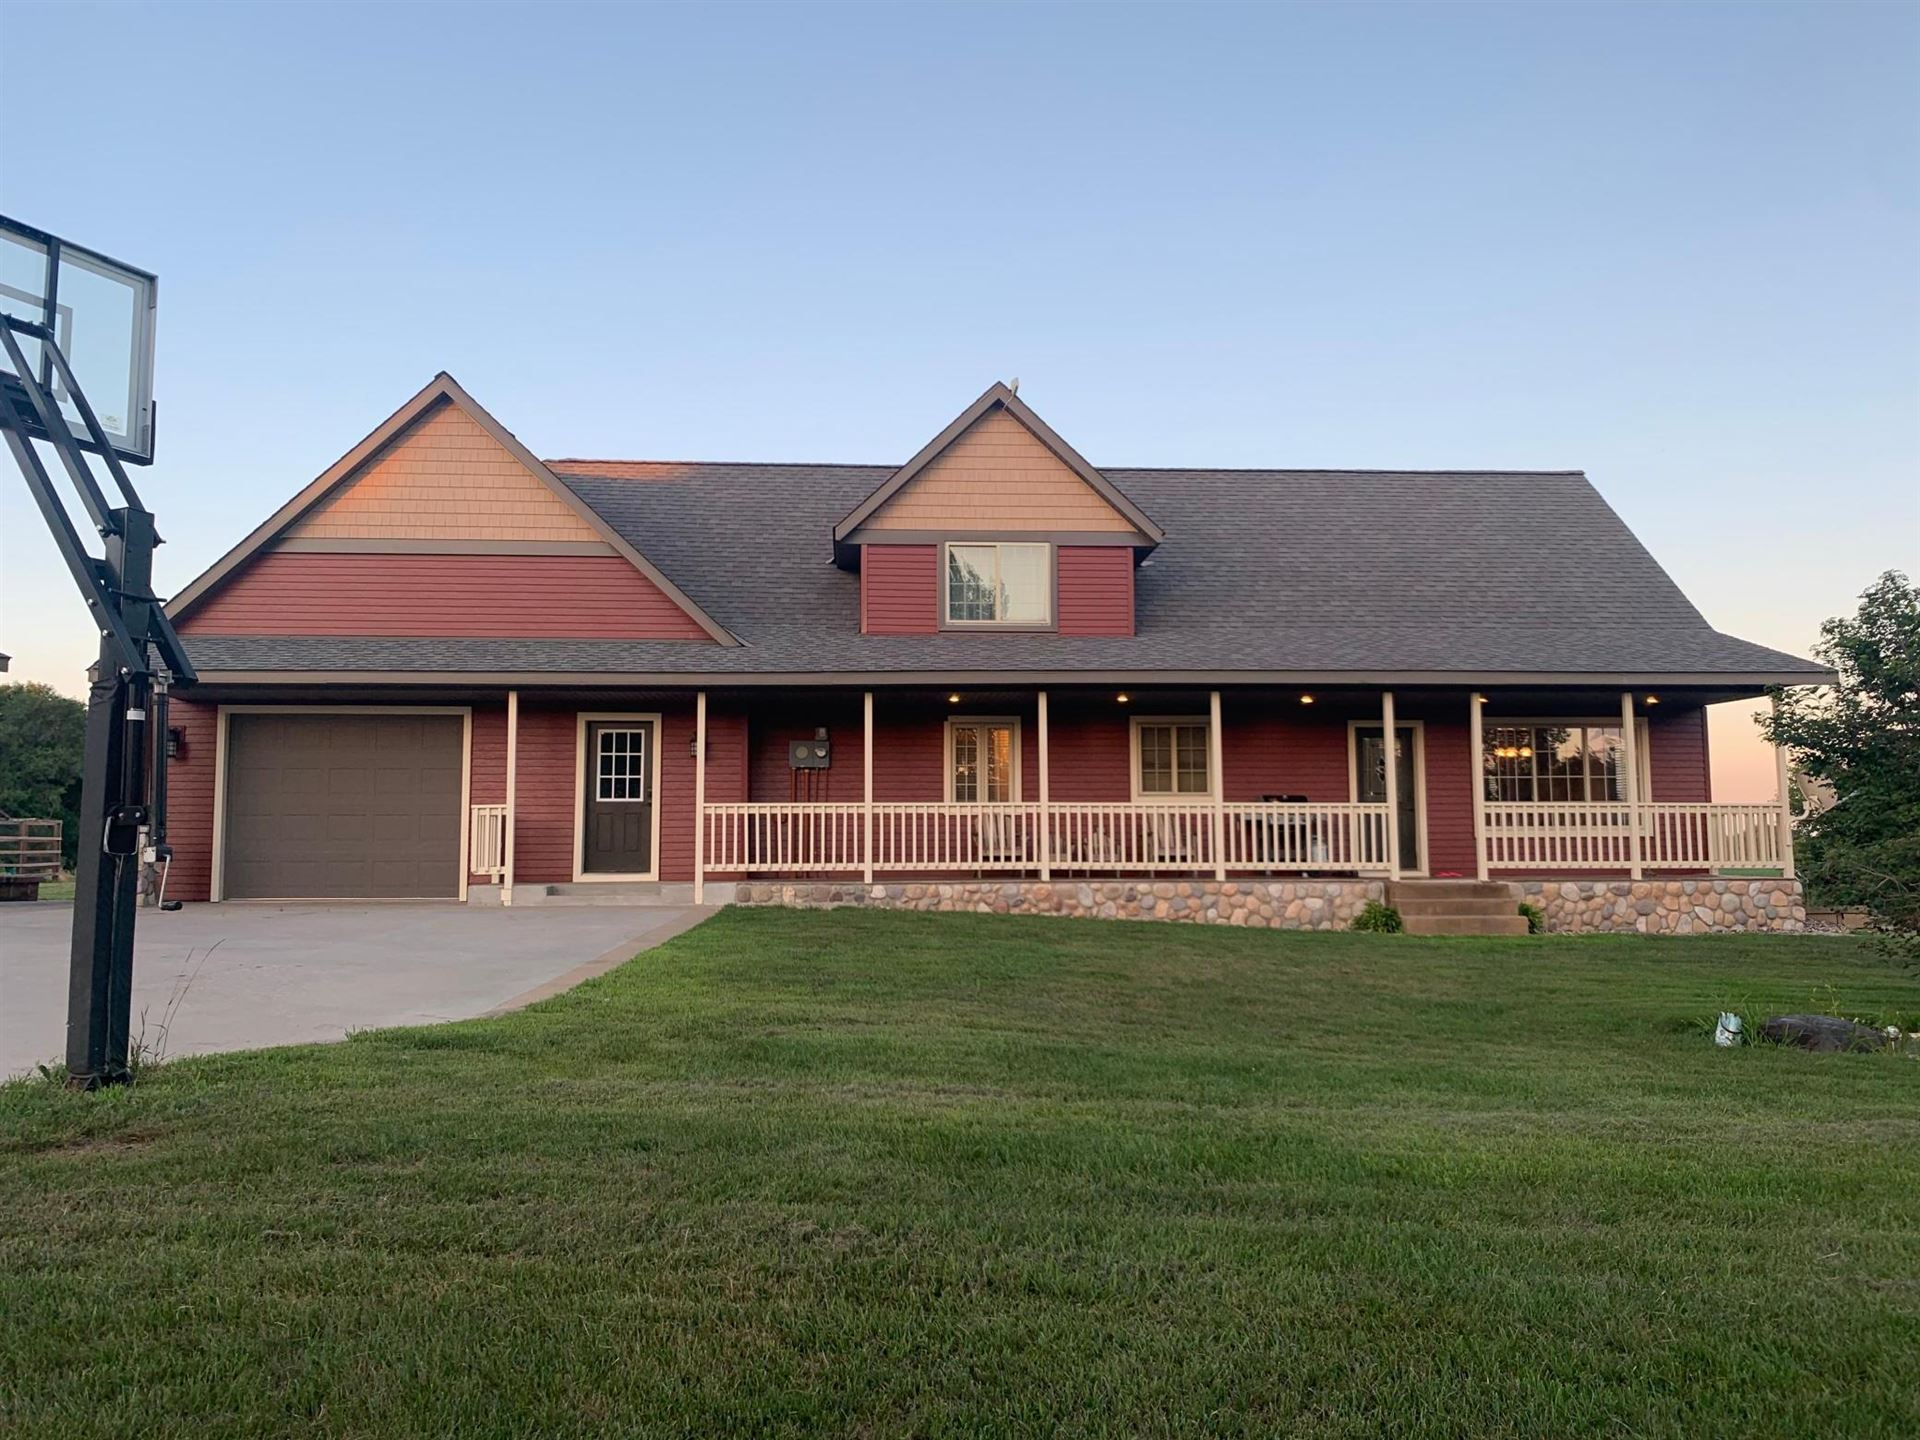 Photo of 16446 78th Avenue, Kimball, MN 55353 (MLS # 5620023)